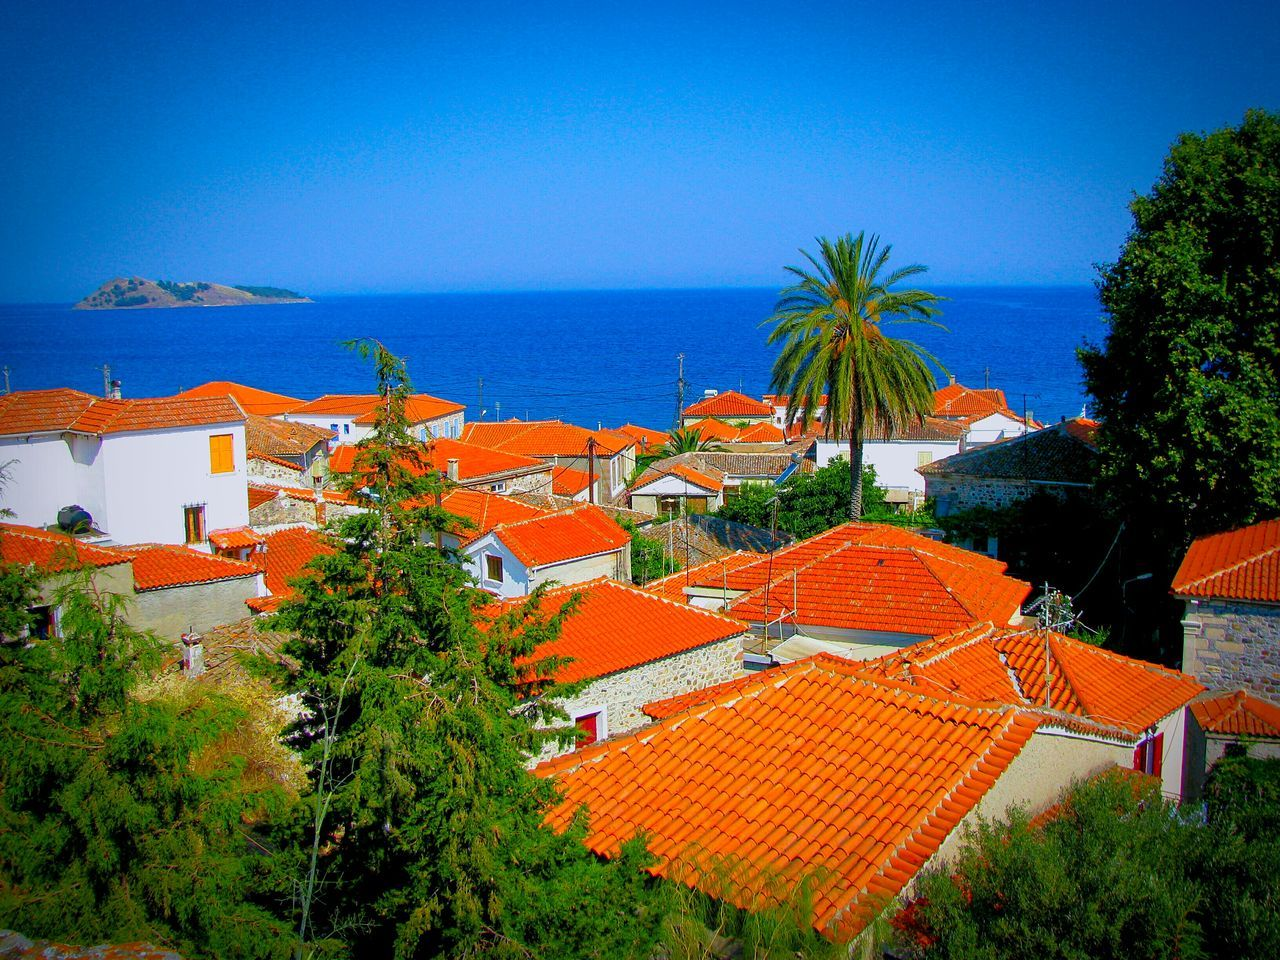 The Architect - 2016 EyeEm Awards Village Greek Village Houses View From The Top View From Above Roofs Red Roofs Traditional Picturesque Village And Sea Seaside Village The Great Outdoors - 2016 EyeEm Awards The Great Outdoors With Adobe Petra Lesvos Island Greek Islands Trees Palm Tree Seaside Village View Villagescape Architecture